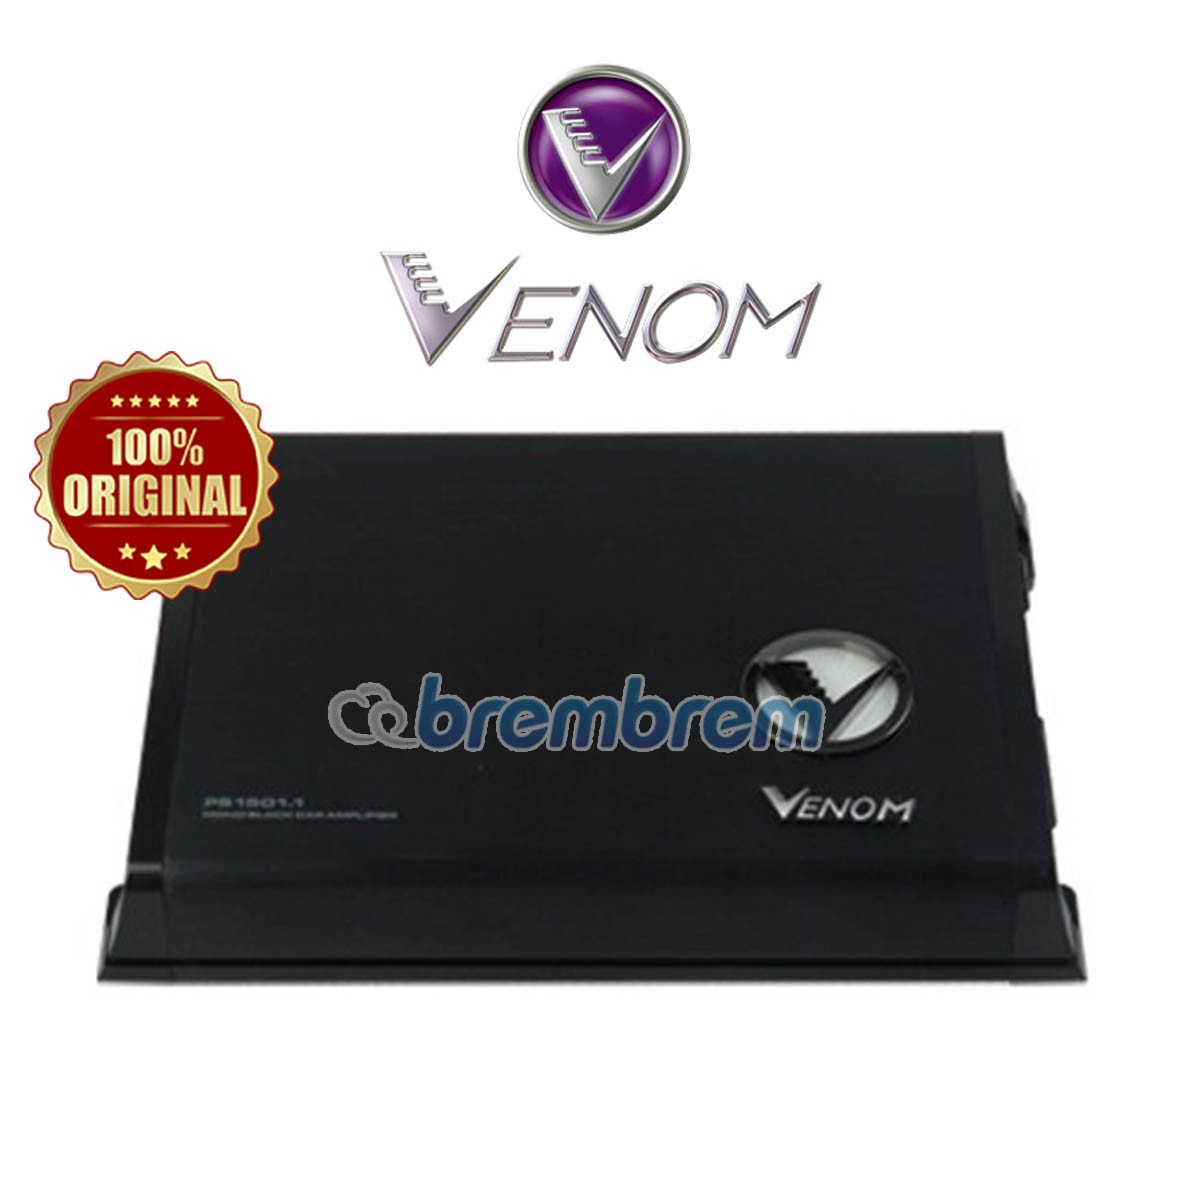 VENOM PURPLE STROM SERIES PS 1501.1 - POWER MONOBLOCK